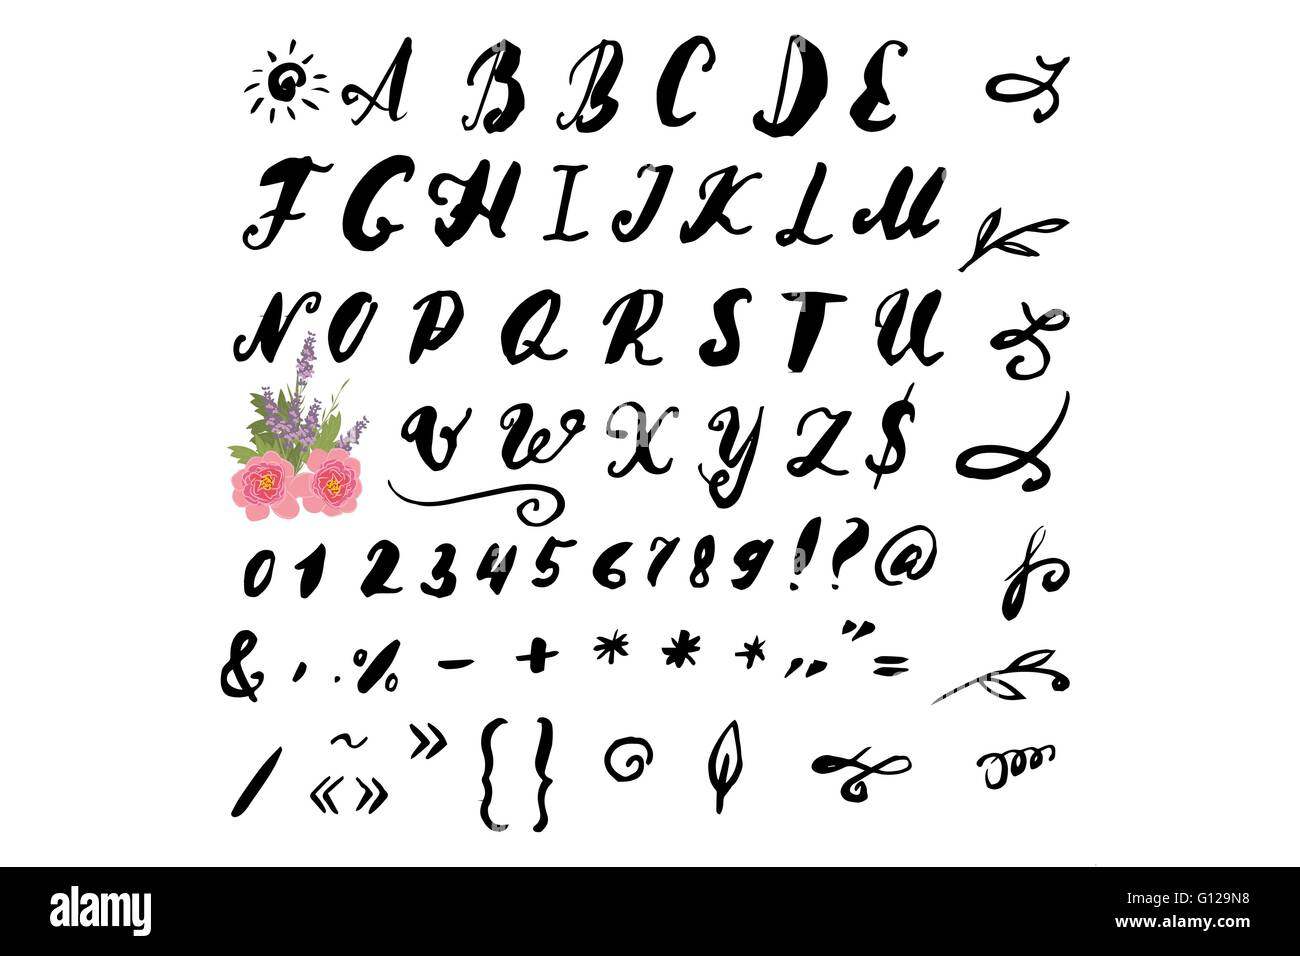 Vector Illustration Brush Style Of Calligraphy Alphabet Lowercase Letters And Numbers